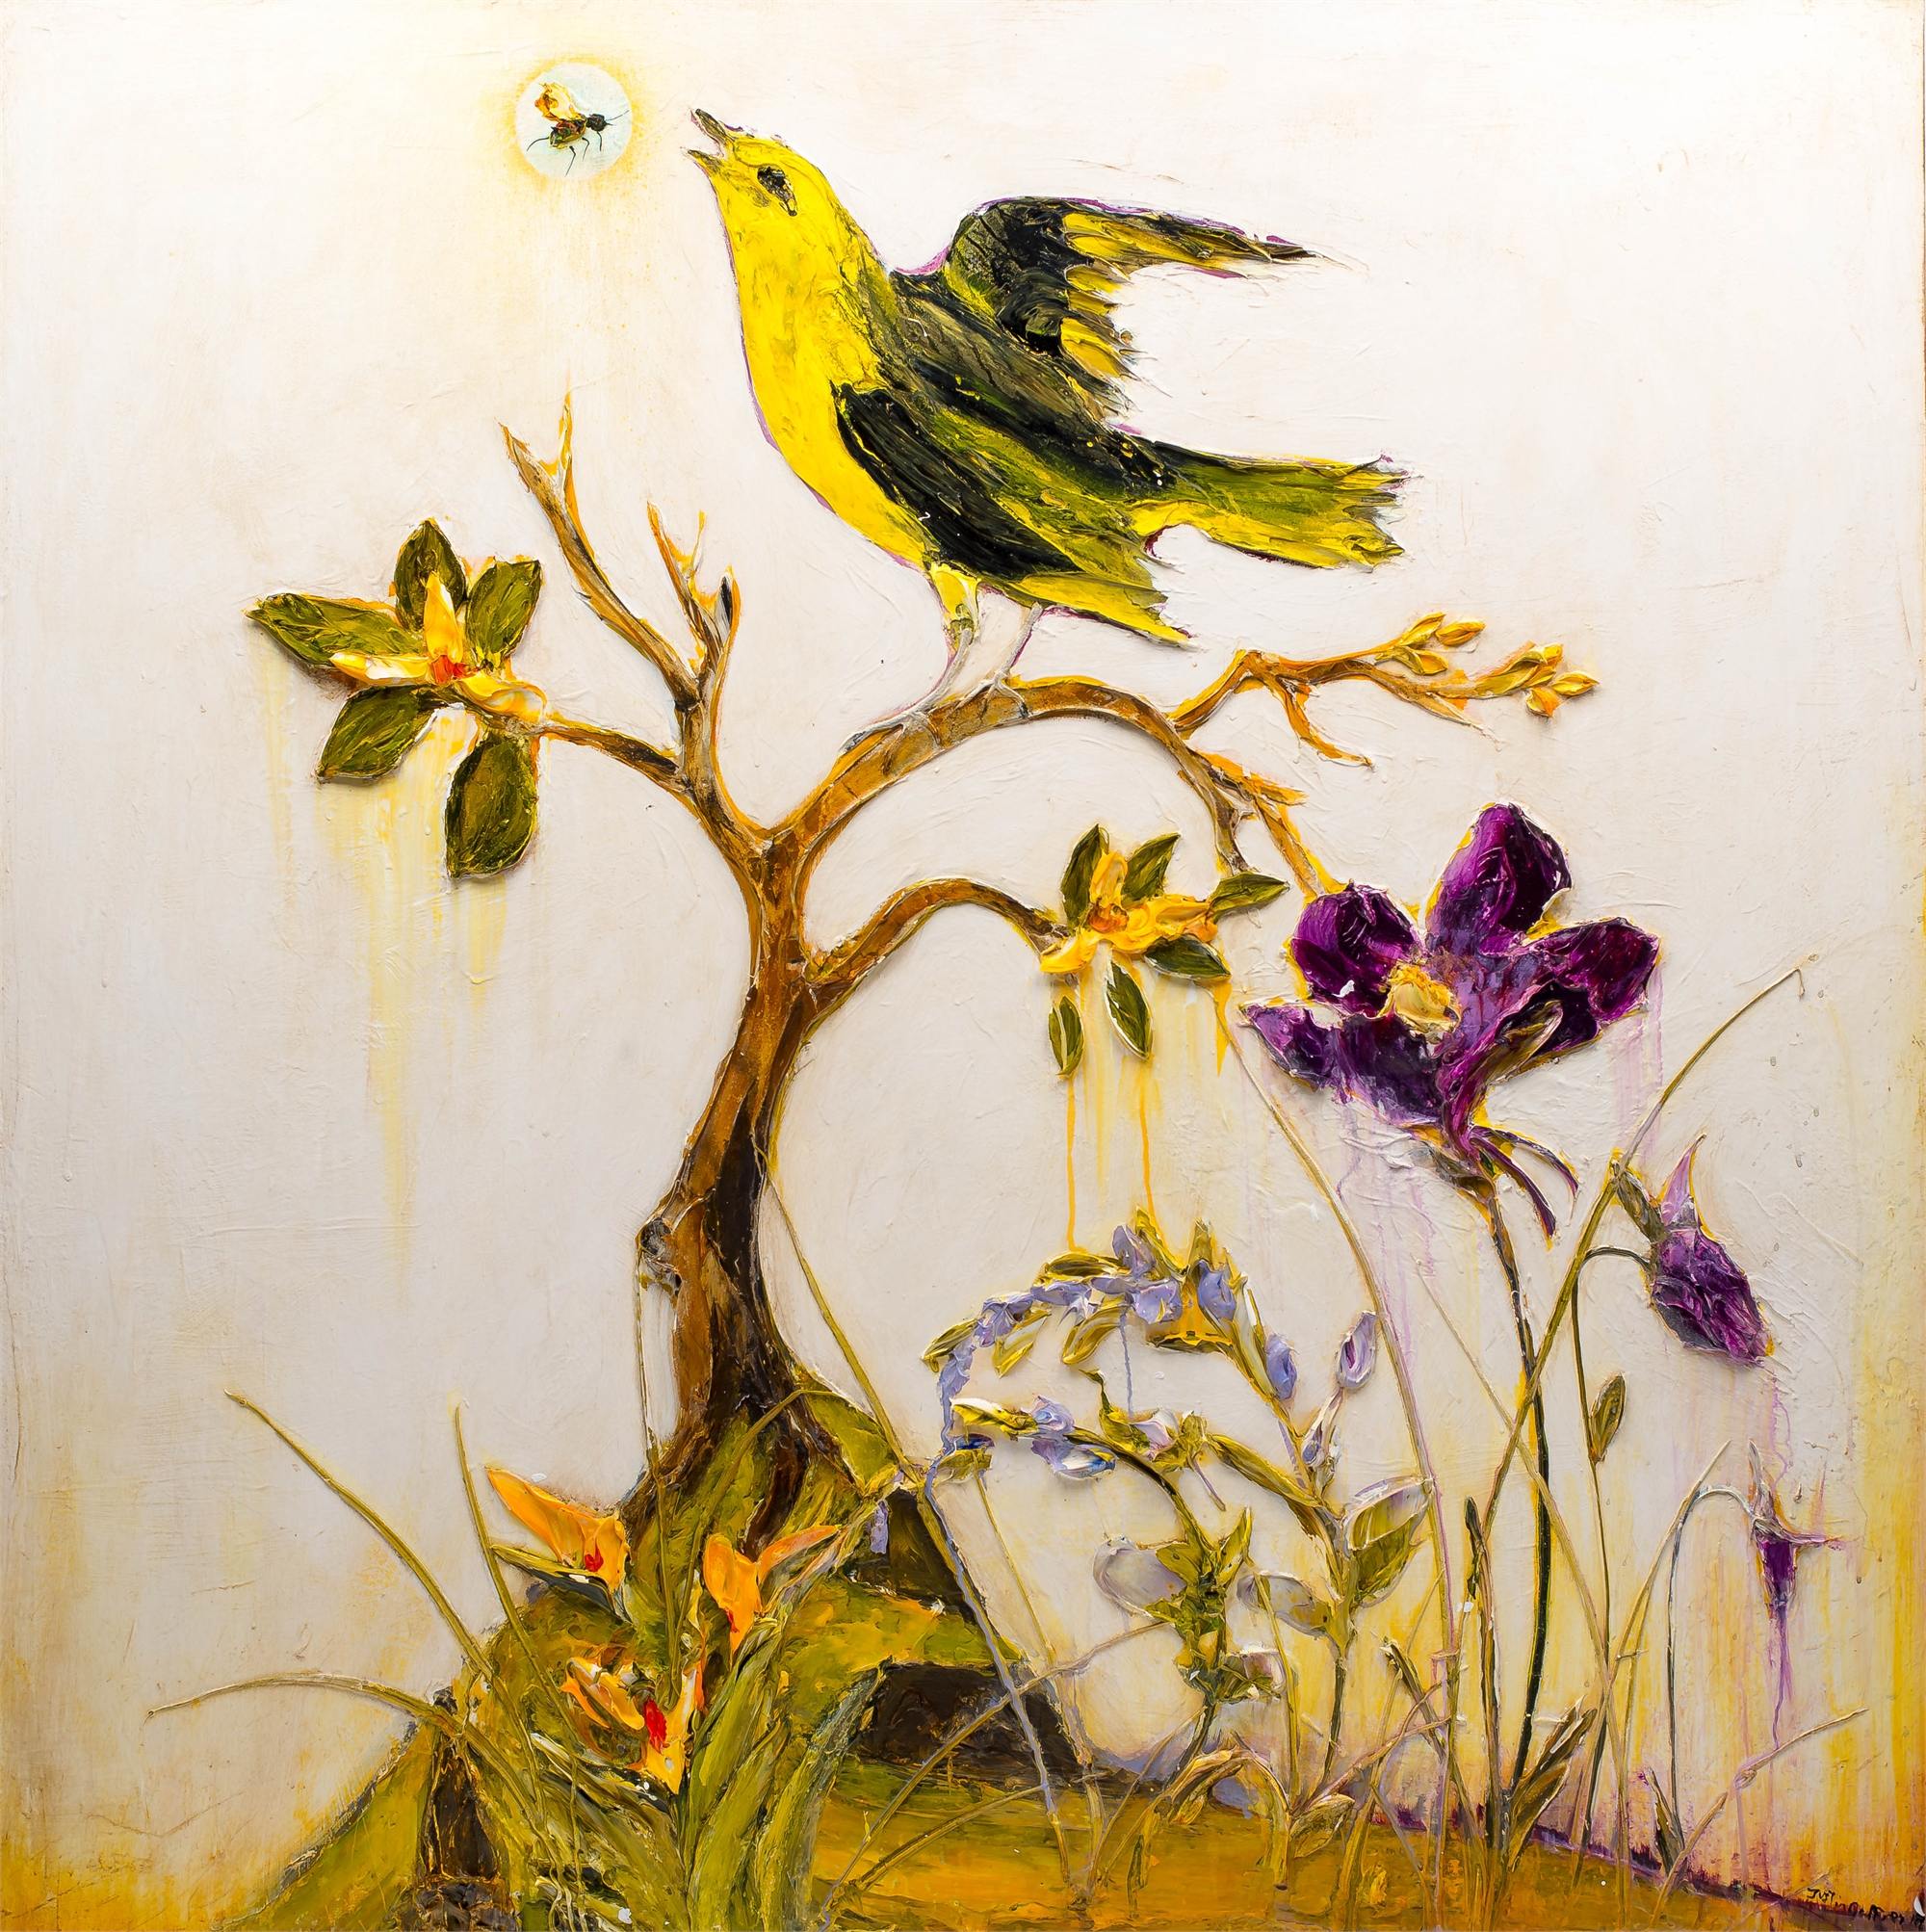 WILDFLOWERS, BIRD AND BEE by JUSTIN GAFFREY